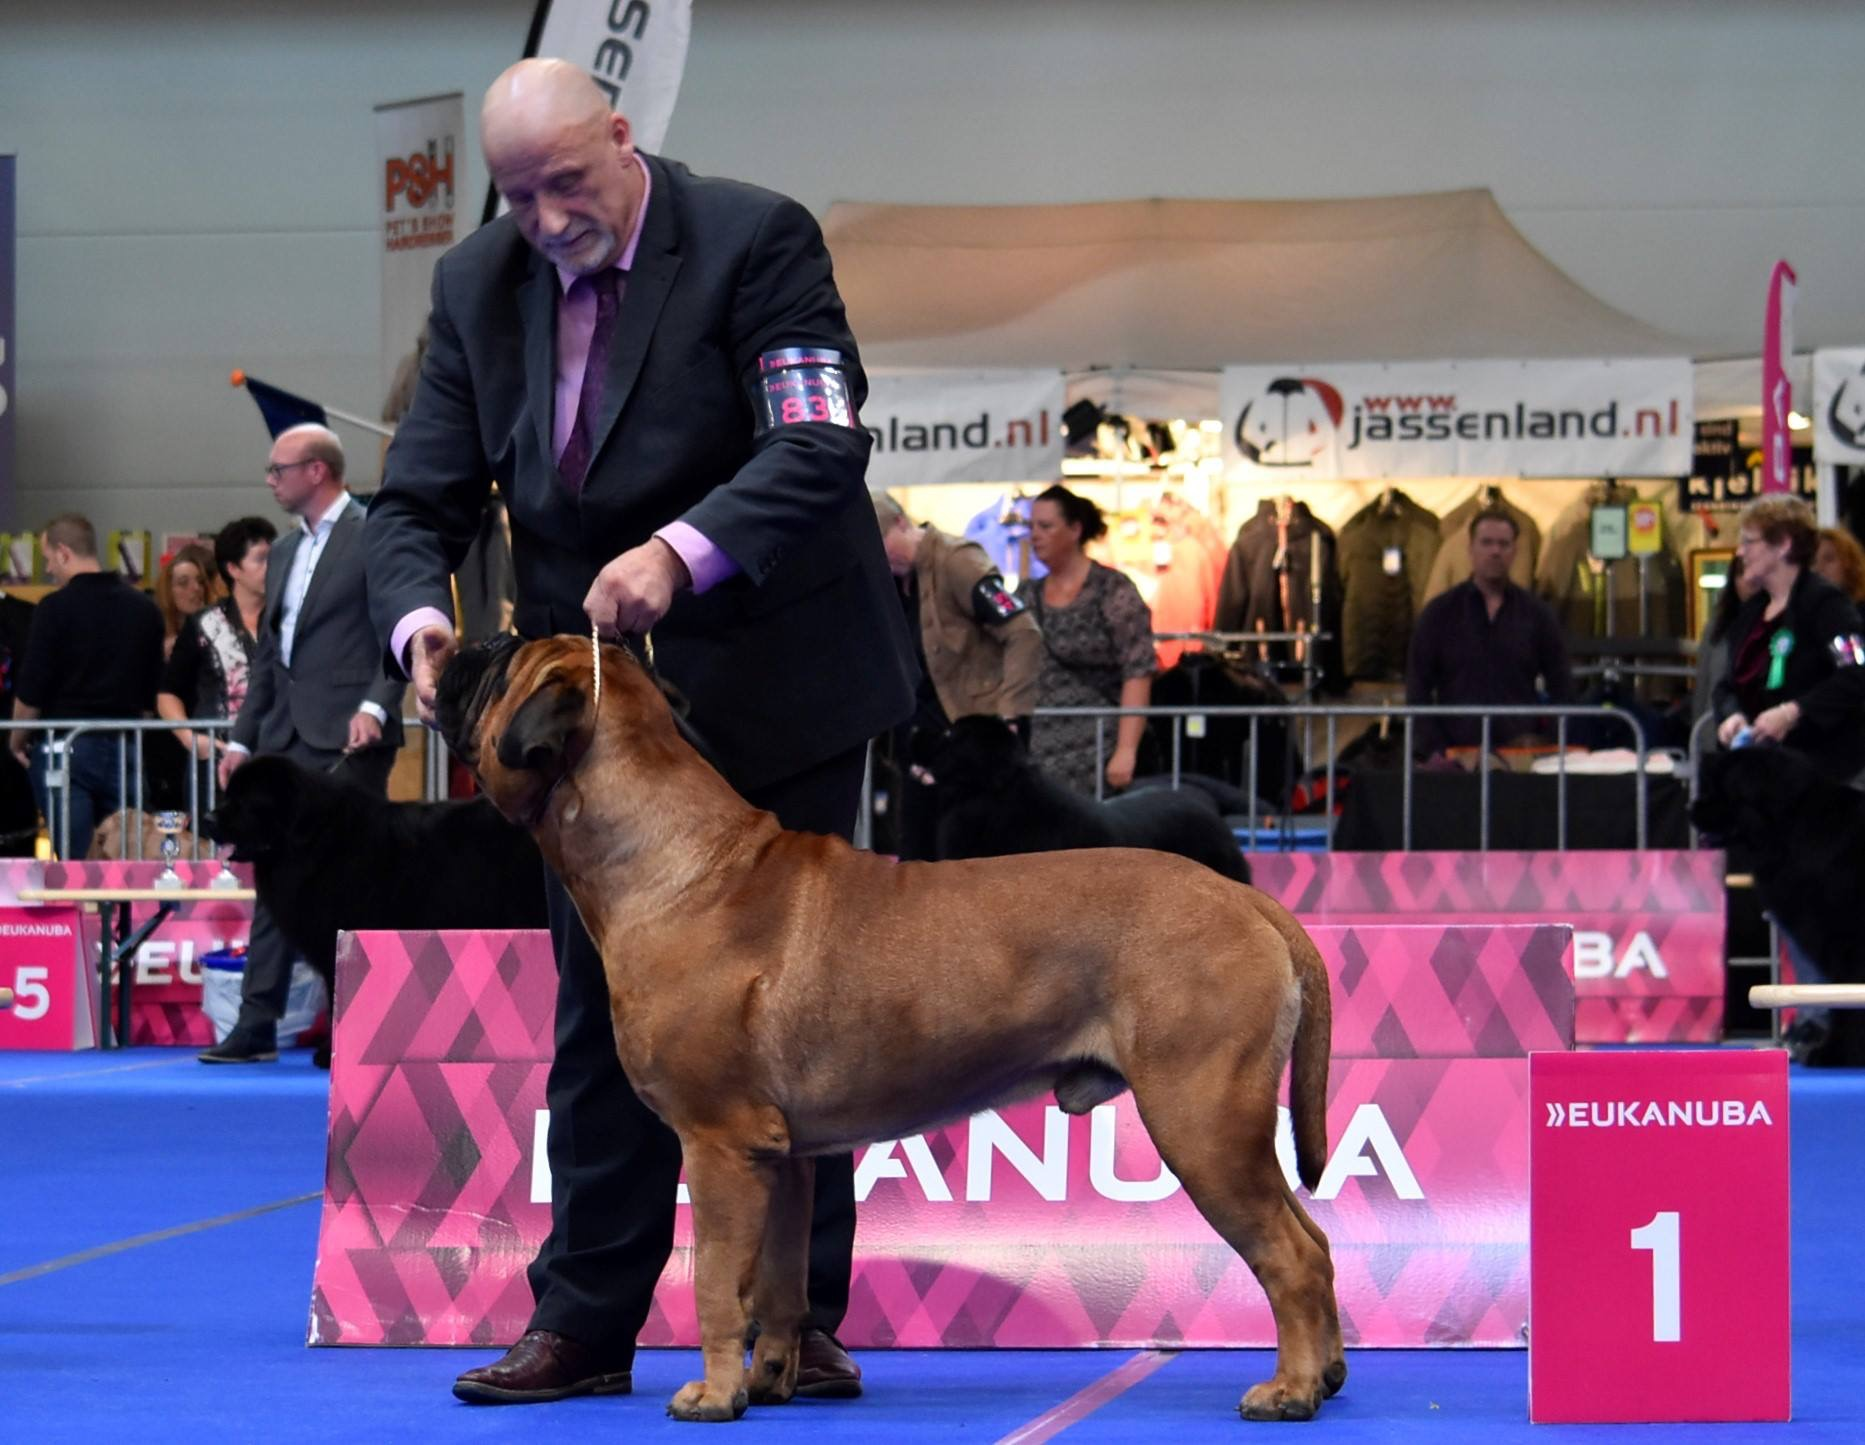 Lemabull u Will be of Valcobulls best of breed IDS Maastricht